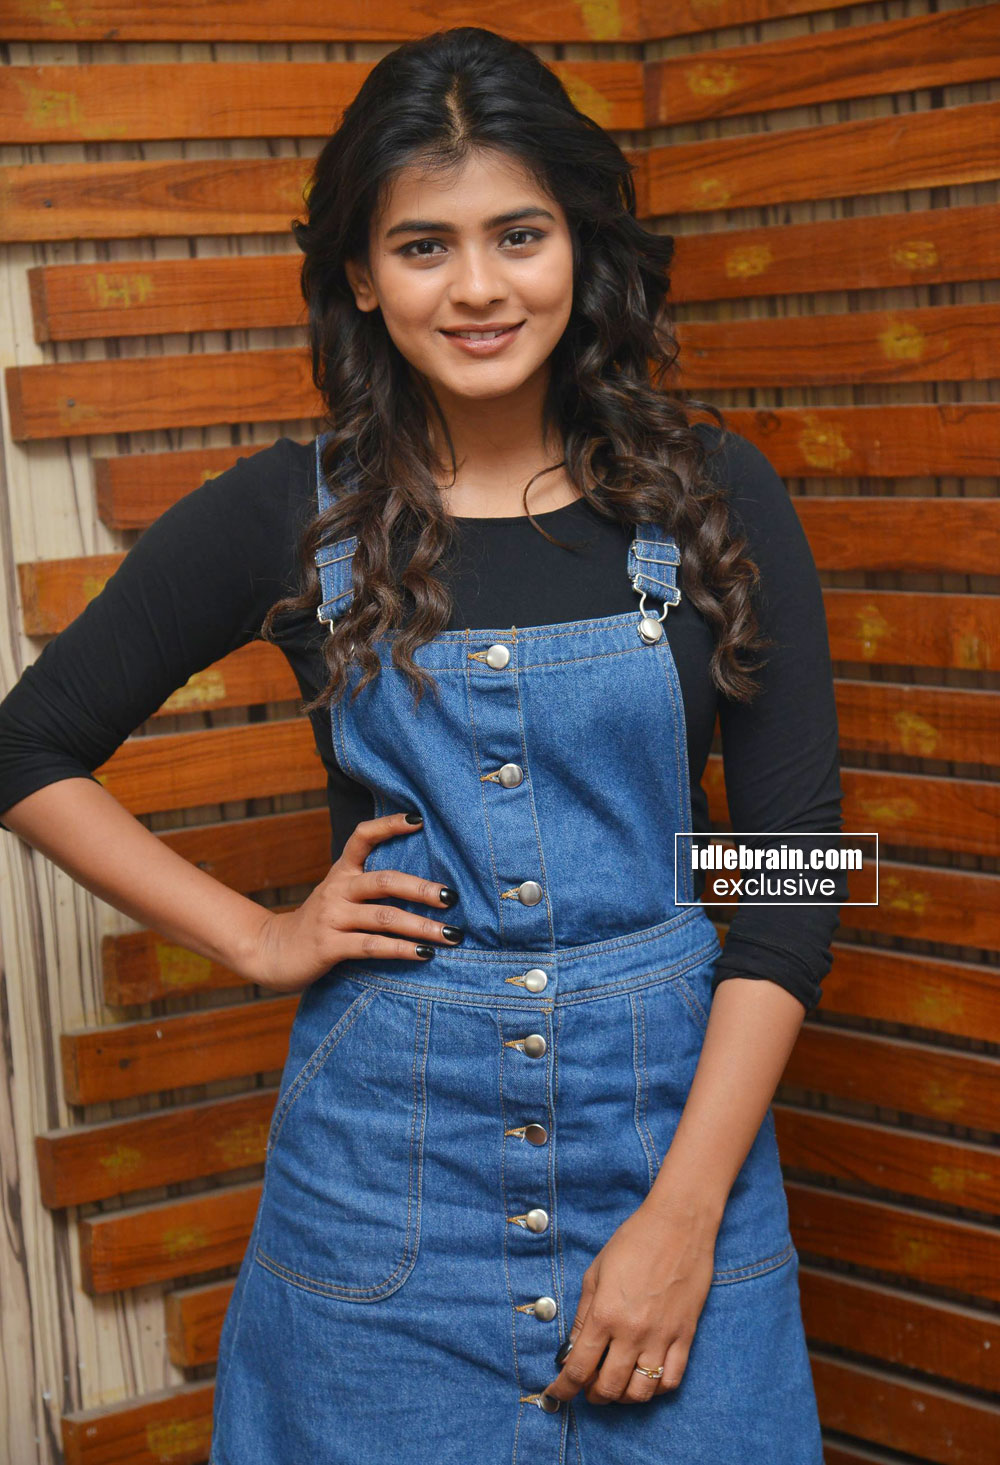 Actress-Hebah-Patel-photo-gallery-http-www-idlebrain-com-movie-photogallery-hebahpatel-index-htm-wallpaper-wp5203825